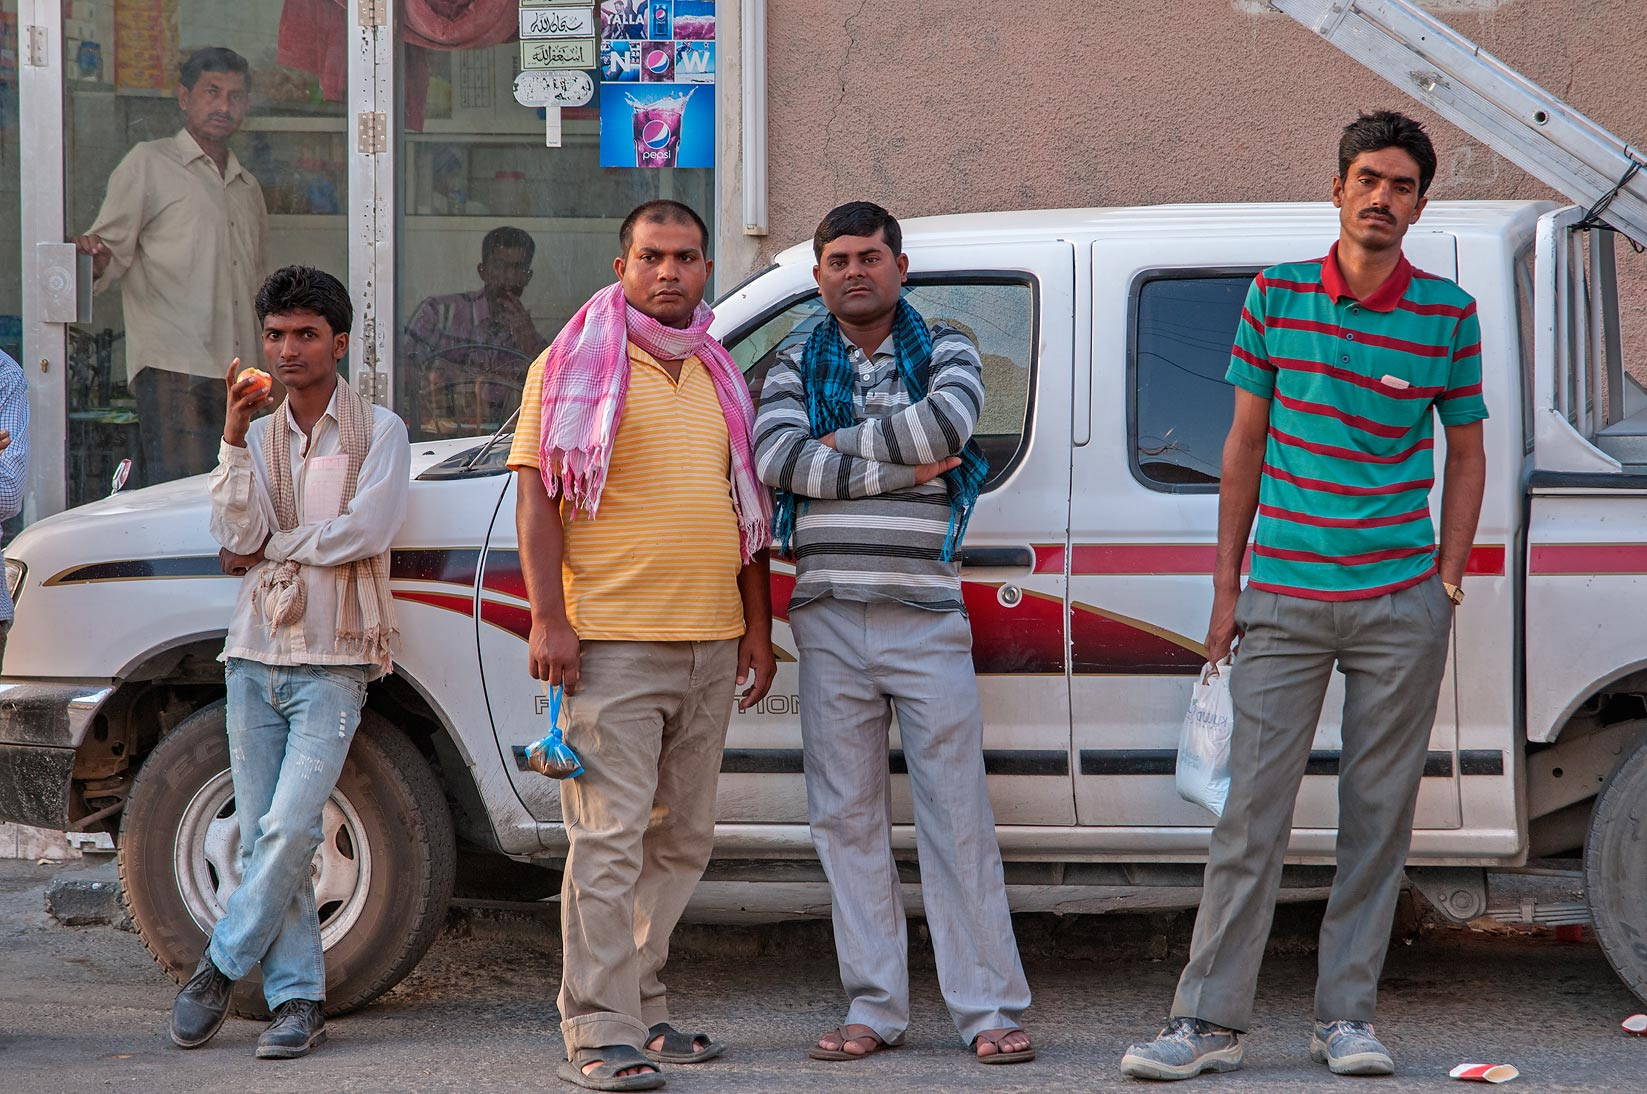 People standing near Al Samit Jucestall on Al Maymoun St., Musheirib area. Doha, Qatar